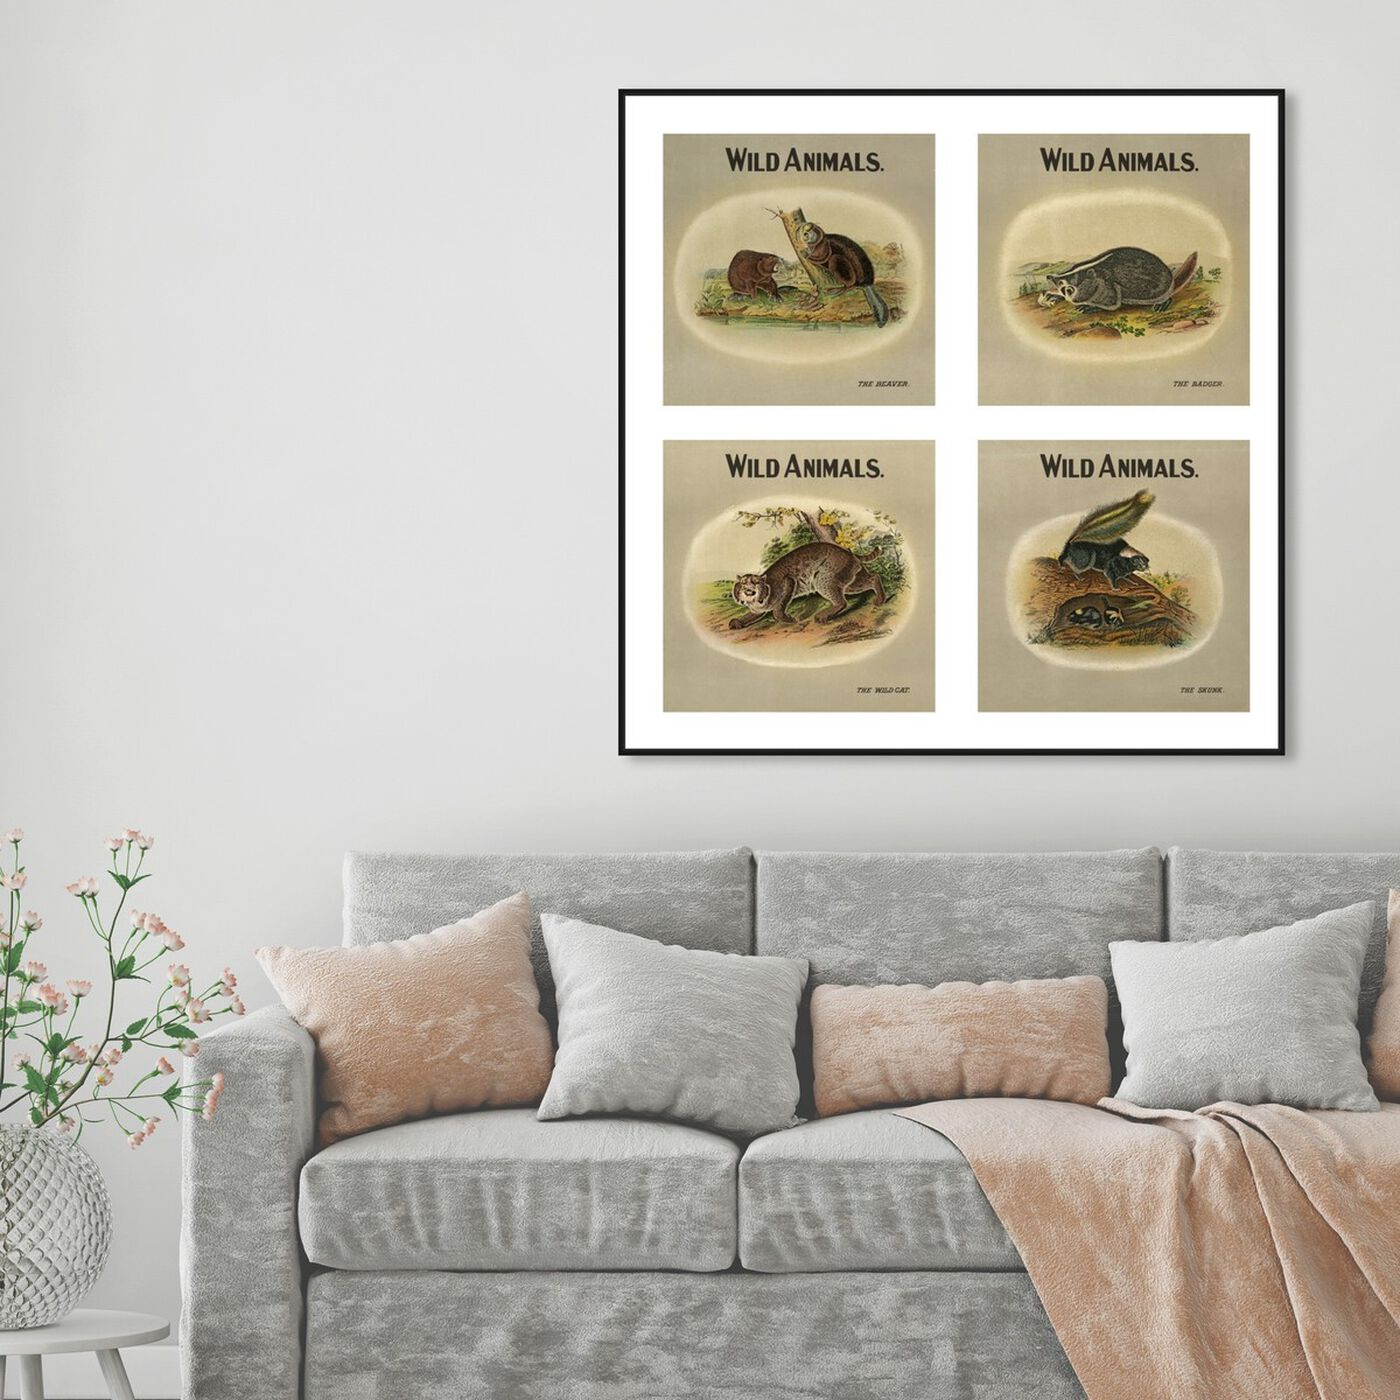 Hanging view of American Fauna featuring animals and zoo and wild animals art.